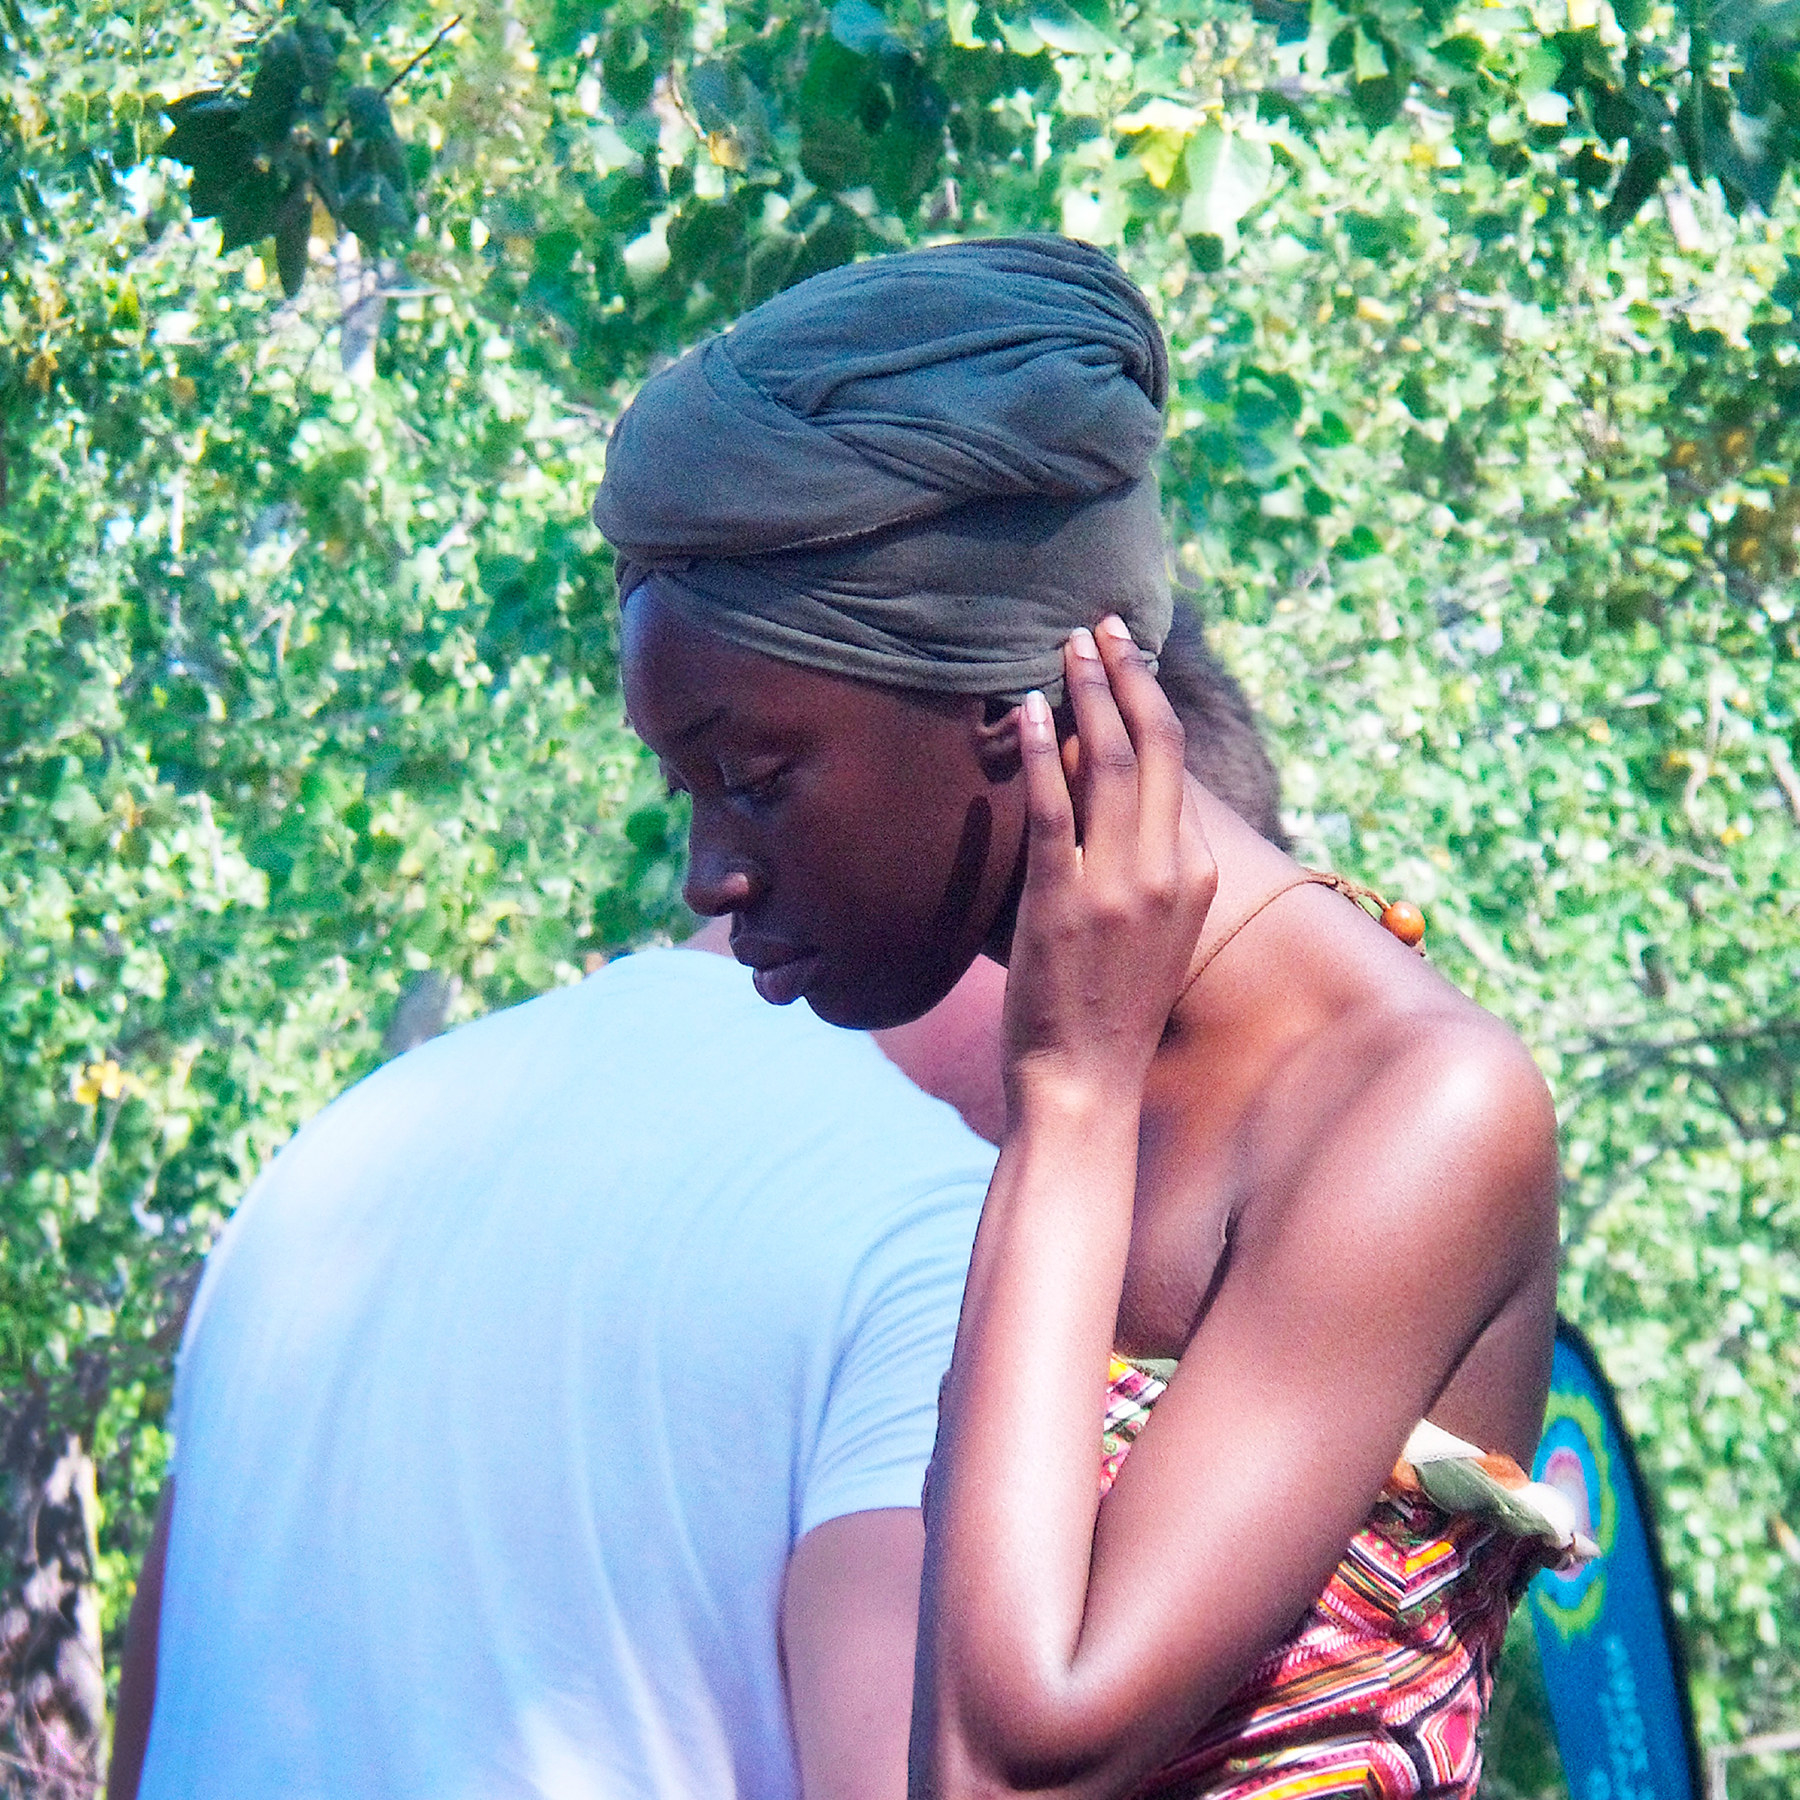 A woman wearing a head wrap and holding a hand to her face crosses paths with a man outside